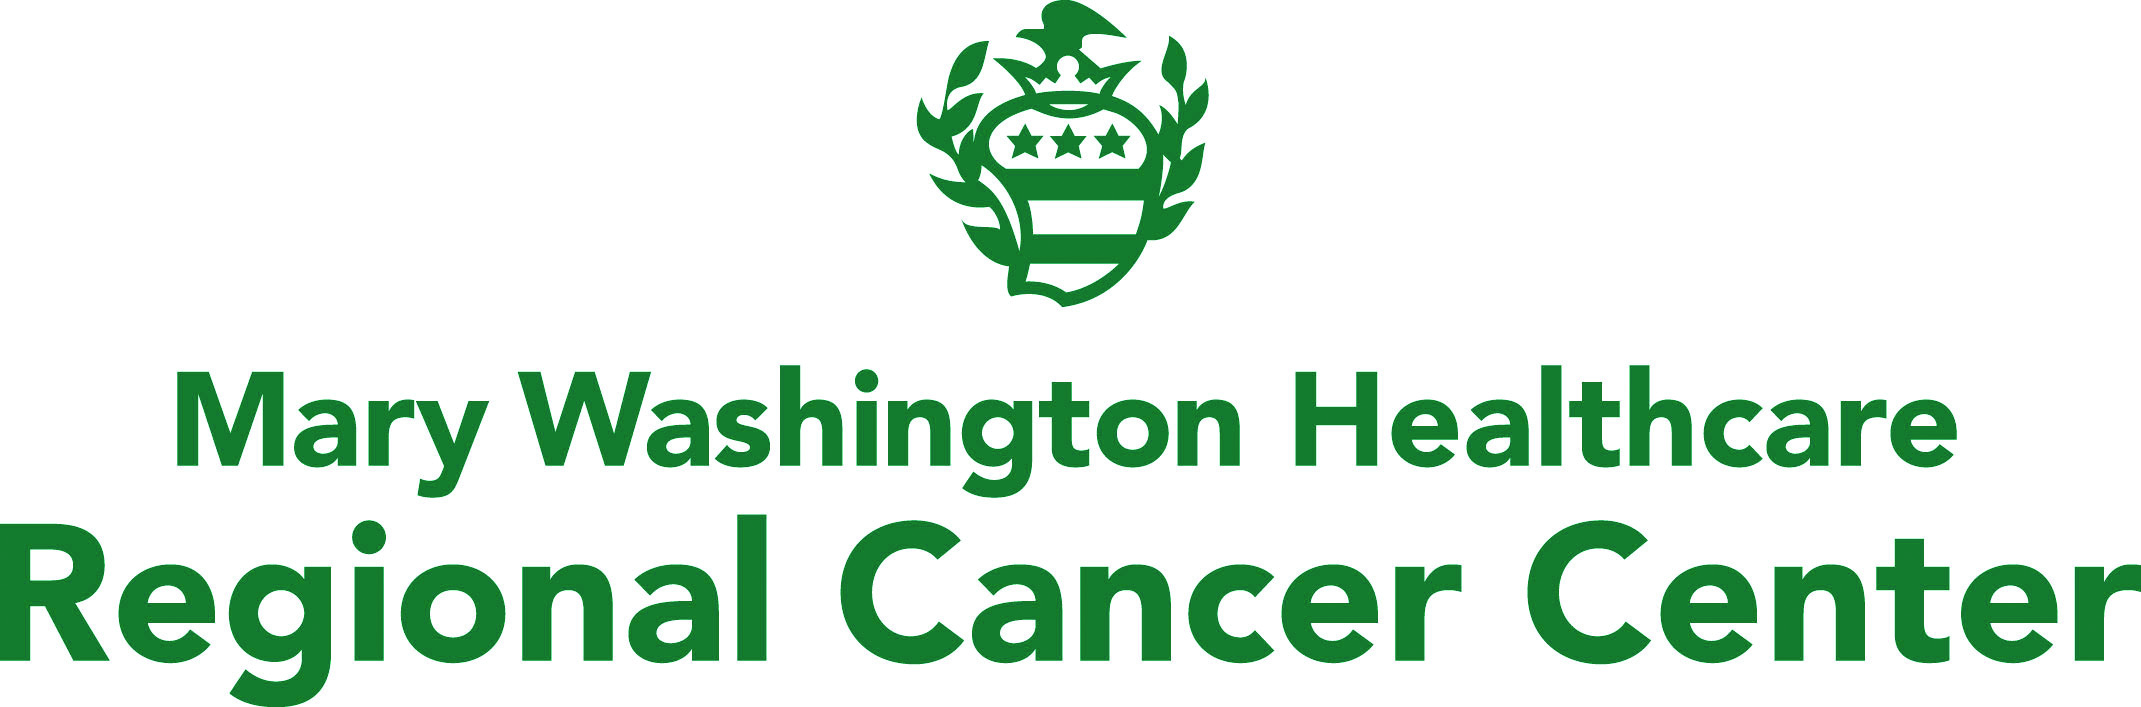 Mary Washington Healthcare Regional Cancer Center